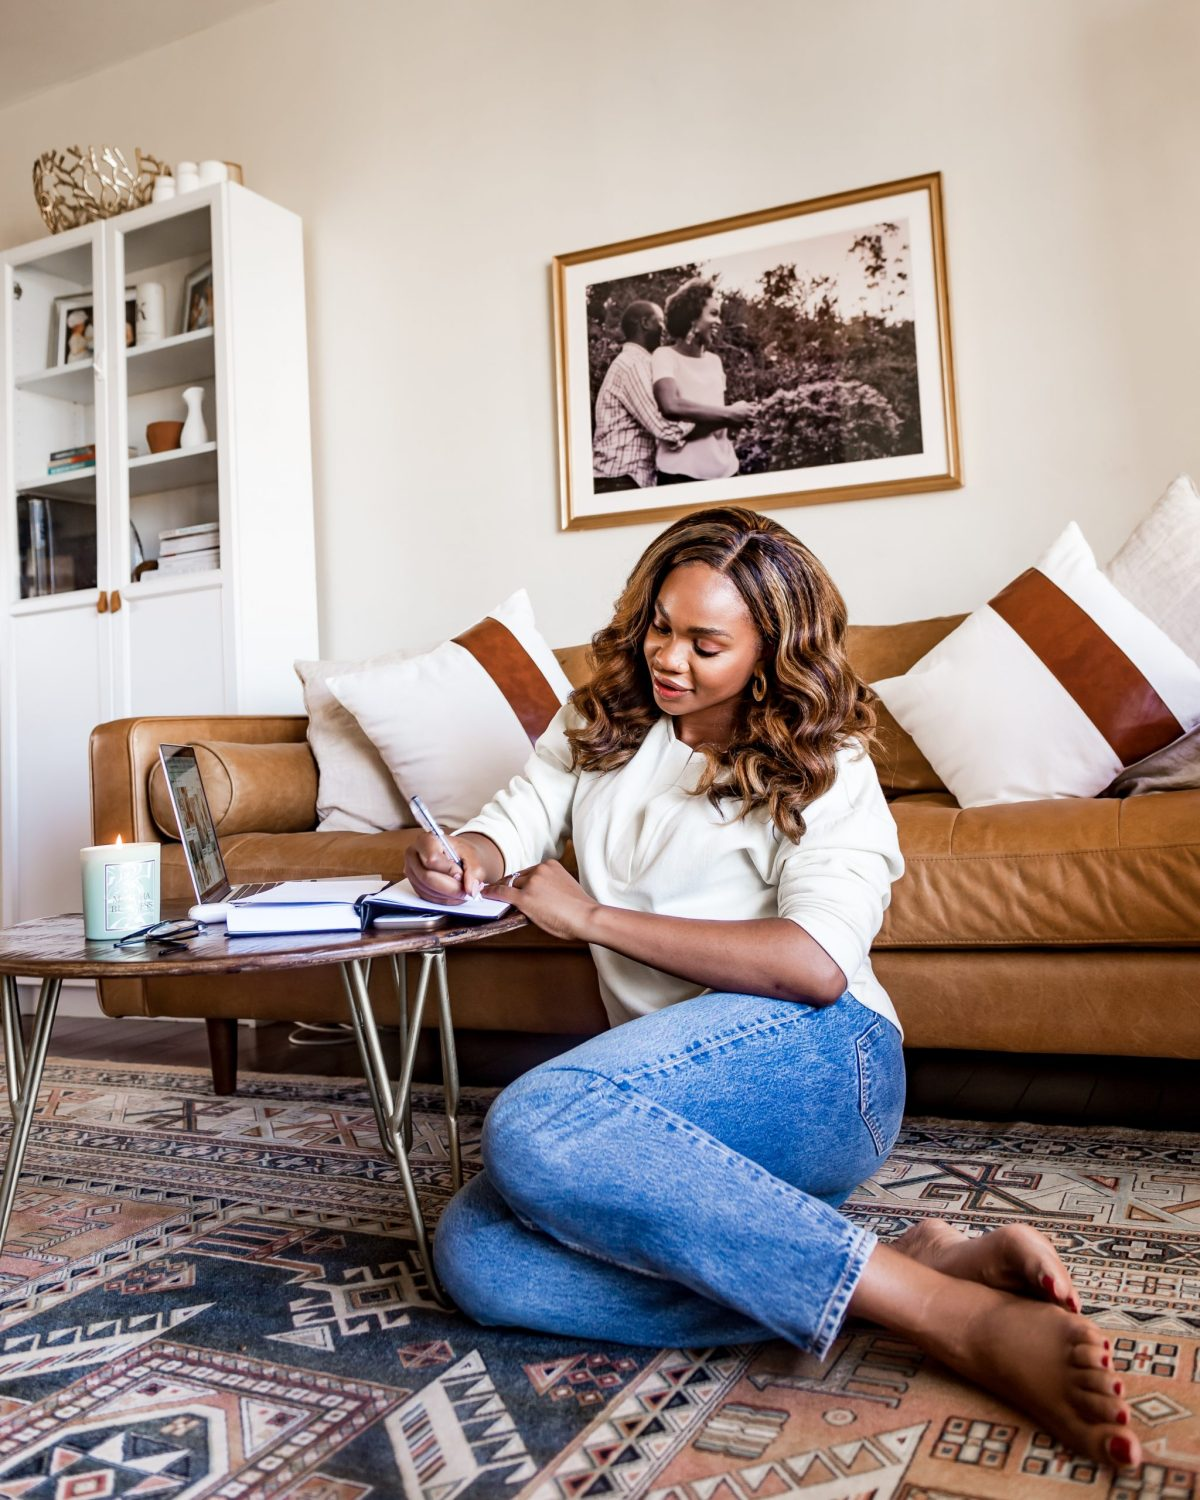 Ijeoma Kola sitting on living room floor and writing in journal - 2021 resolutions blog